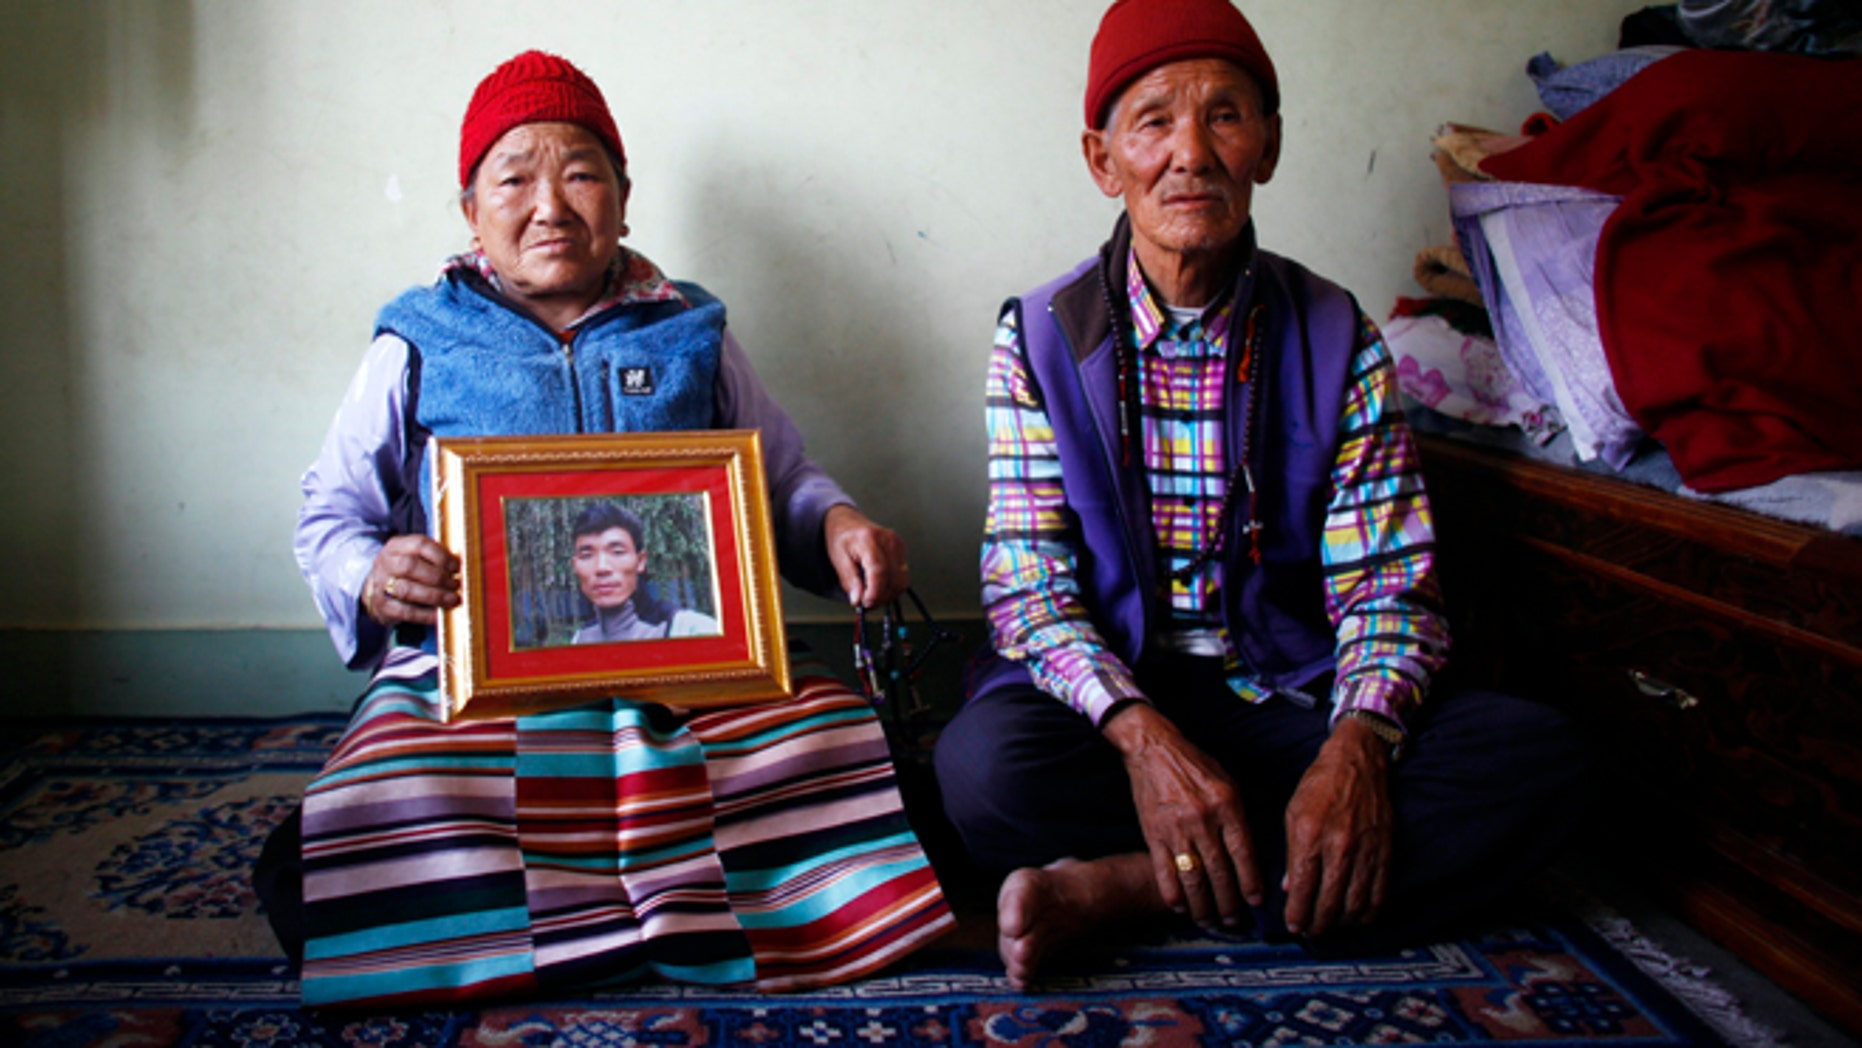 April 23, 2014: Nimdige Sherpa holds a portrait of her son Ang Kaji Sherpa, killed in an avalanche on Mount Everest, with her husband Ankchu Sherpa seated beside her in their rented apartment in Katmandu, Nepal.  (AP)